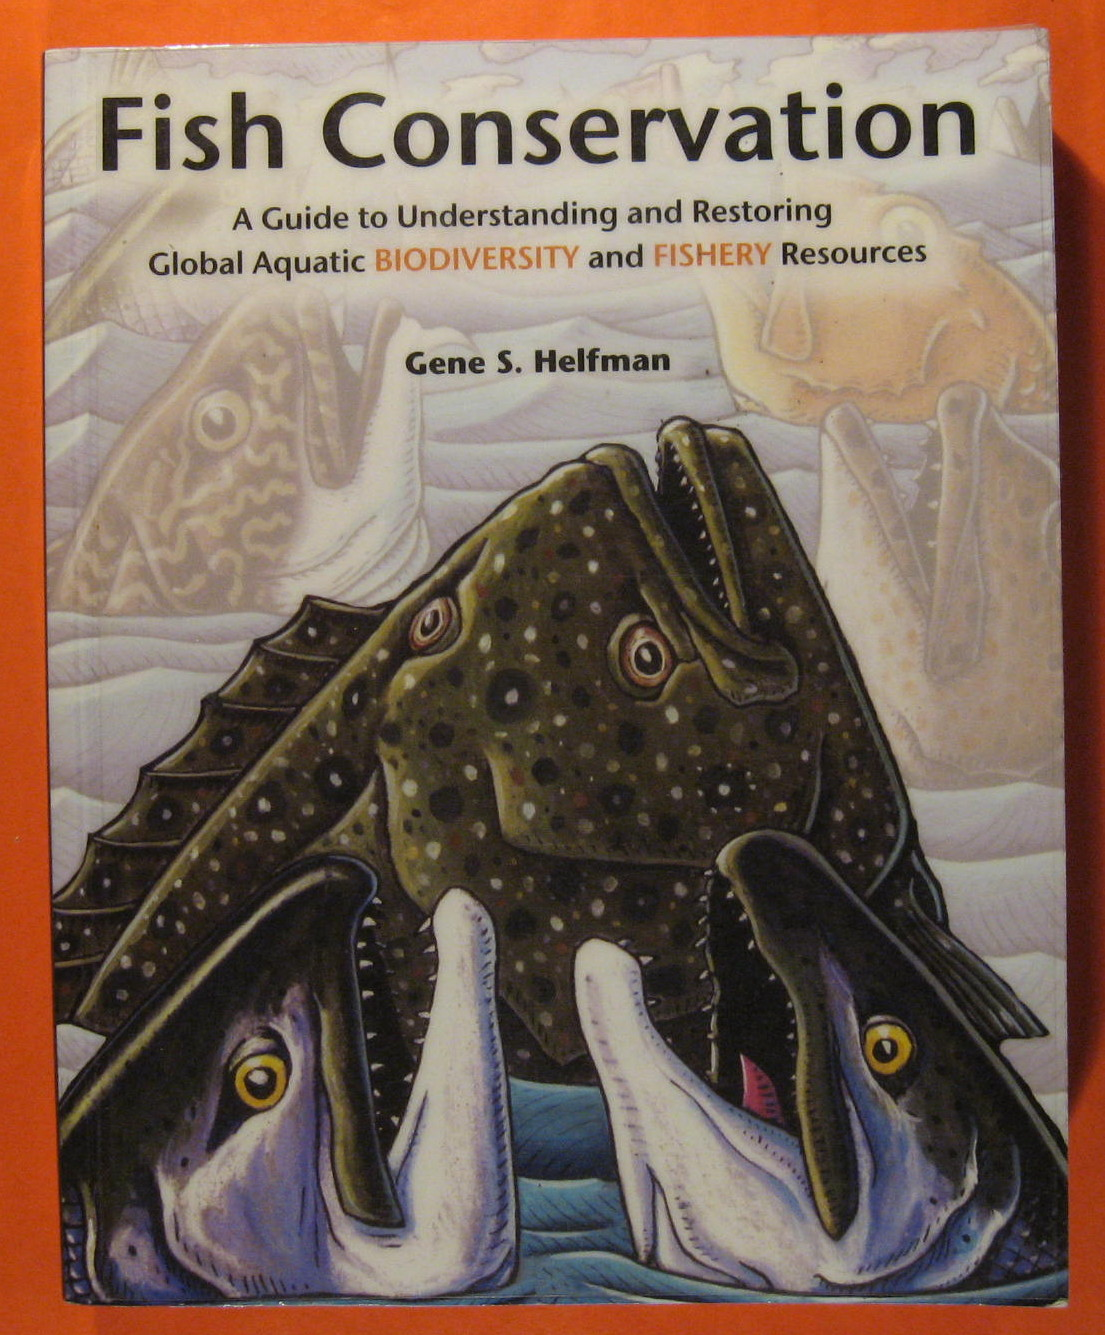 Fish Conservation: A Guide to Understanding and Restoring Global Aquatic Biodiversity and Fishery Resources, Helfman, Gene S.